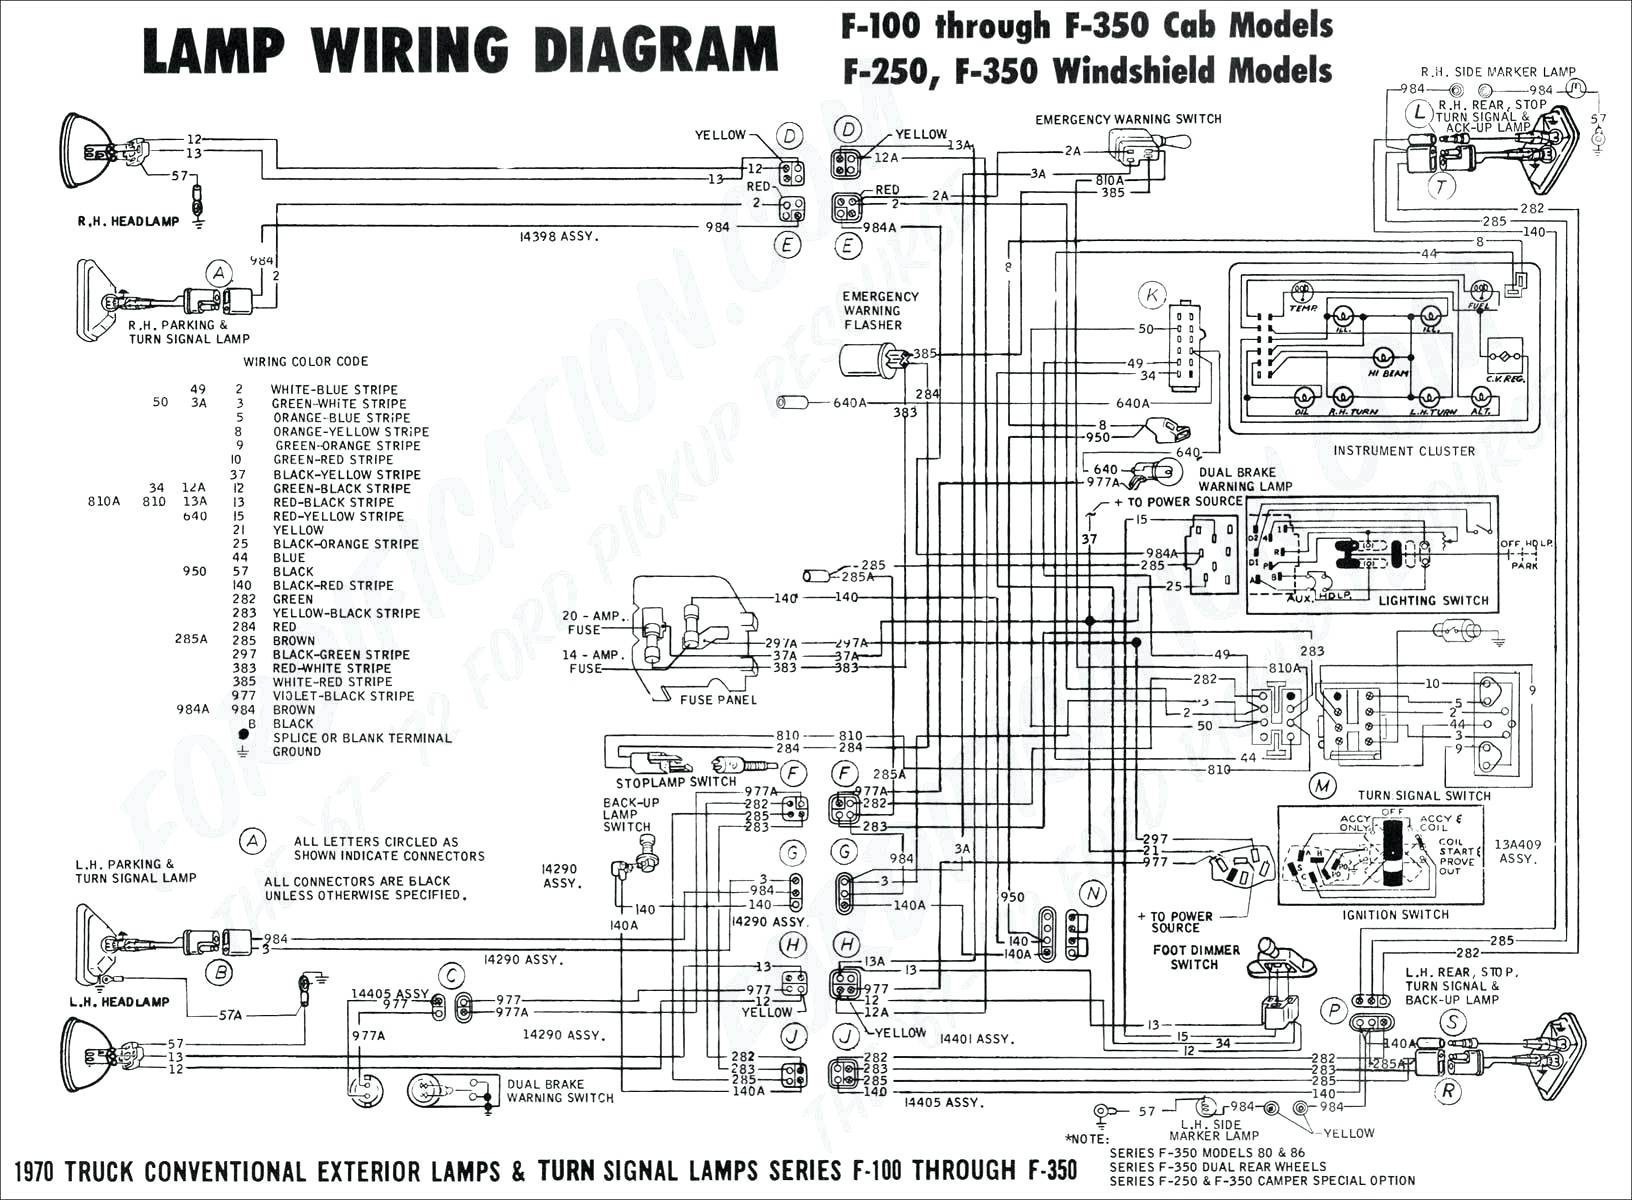 Freightliner Air Tank    Diagram      My    Wiring       DIagram